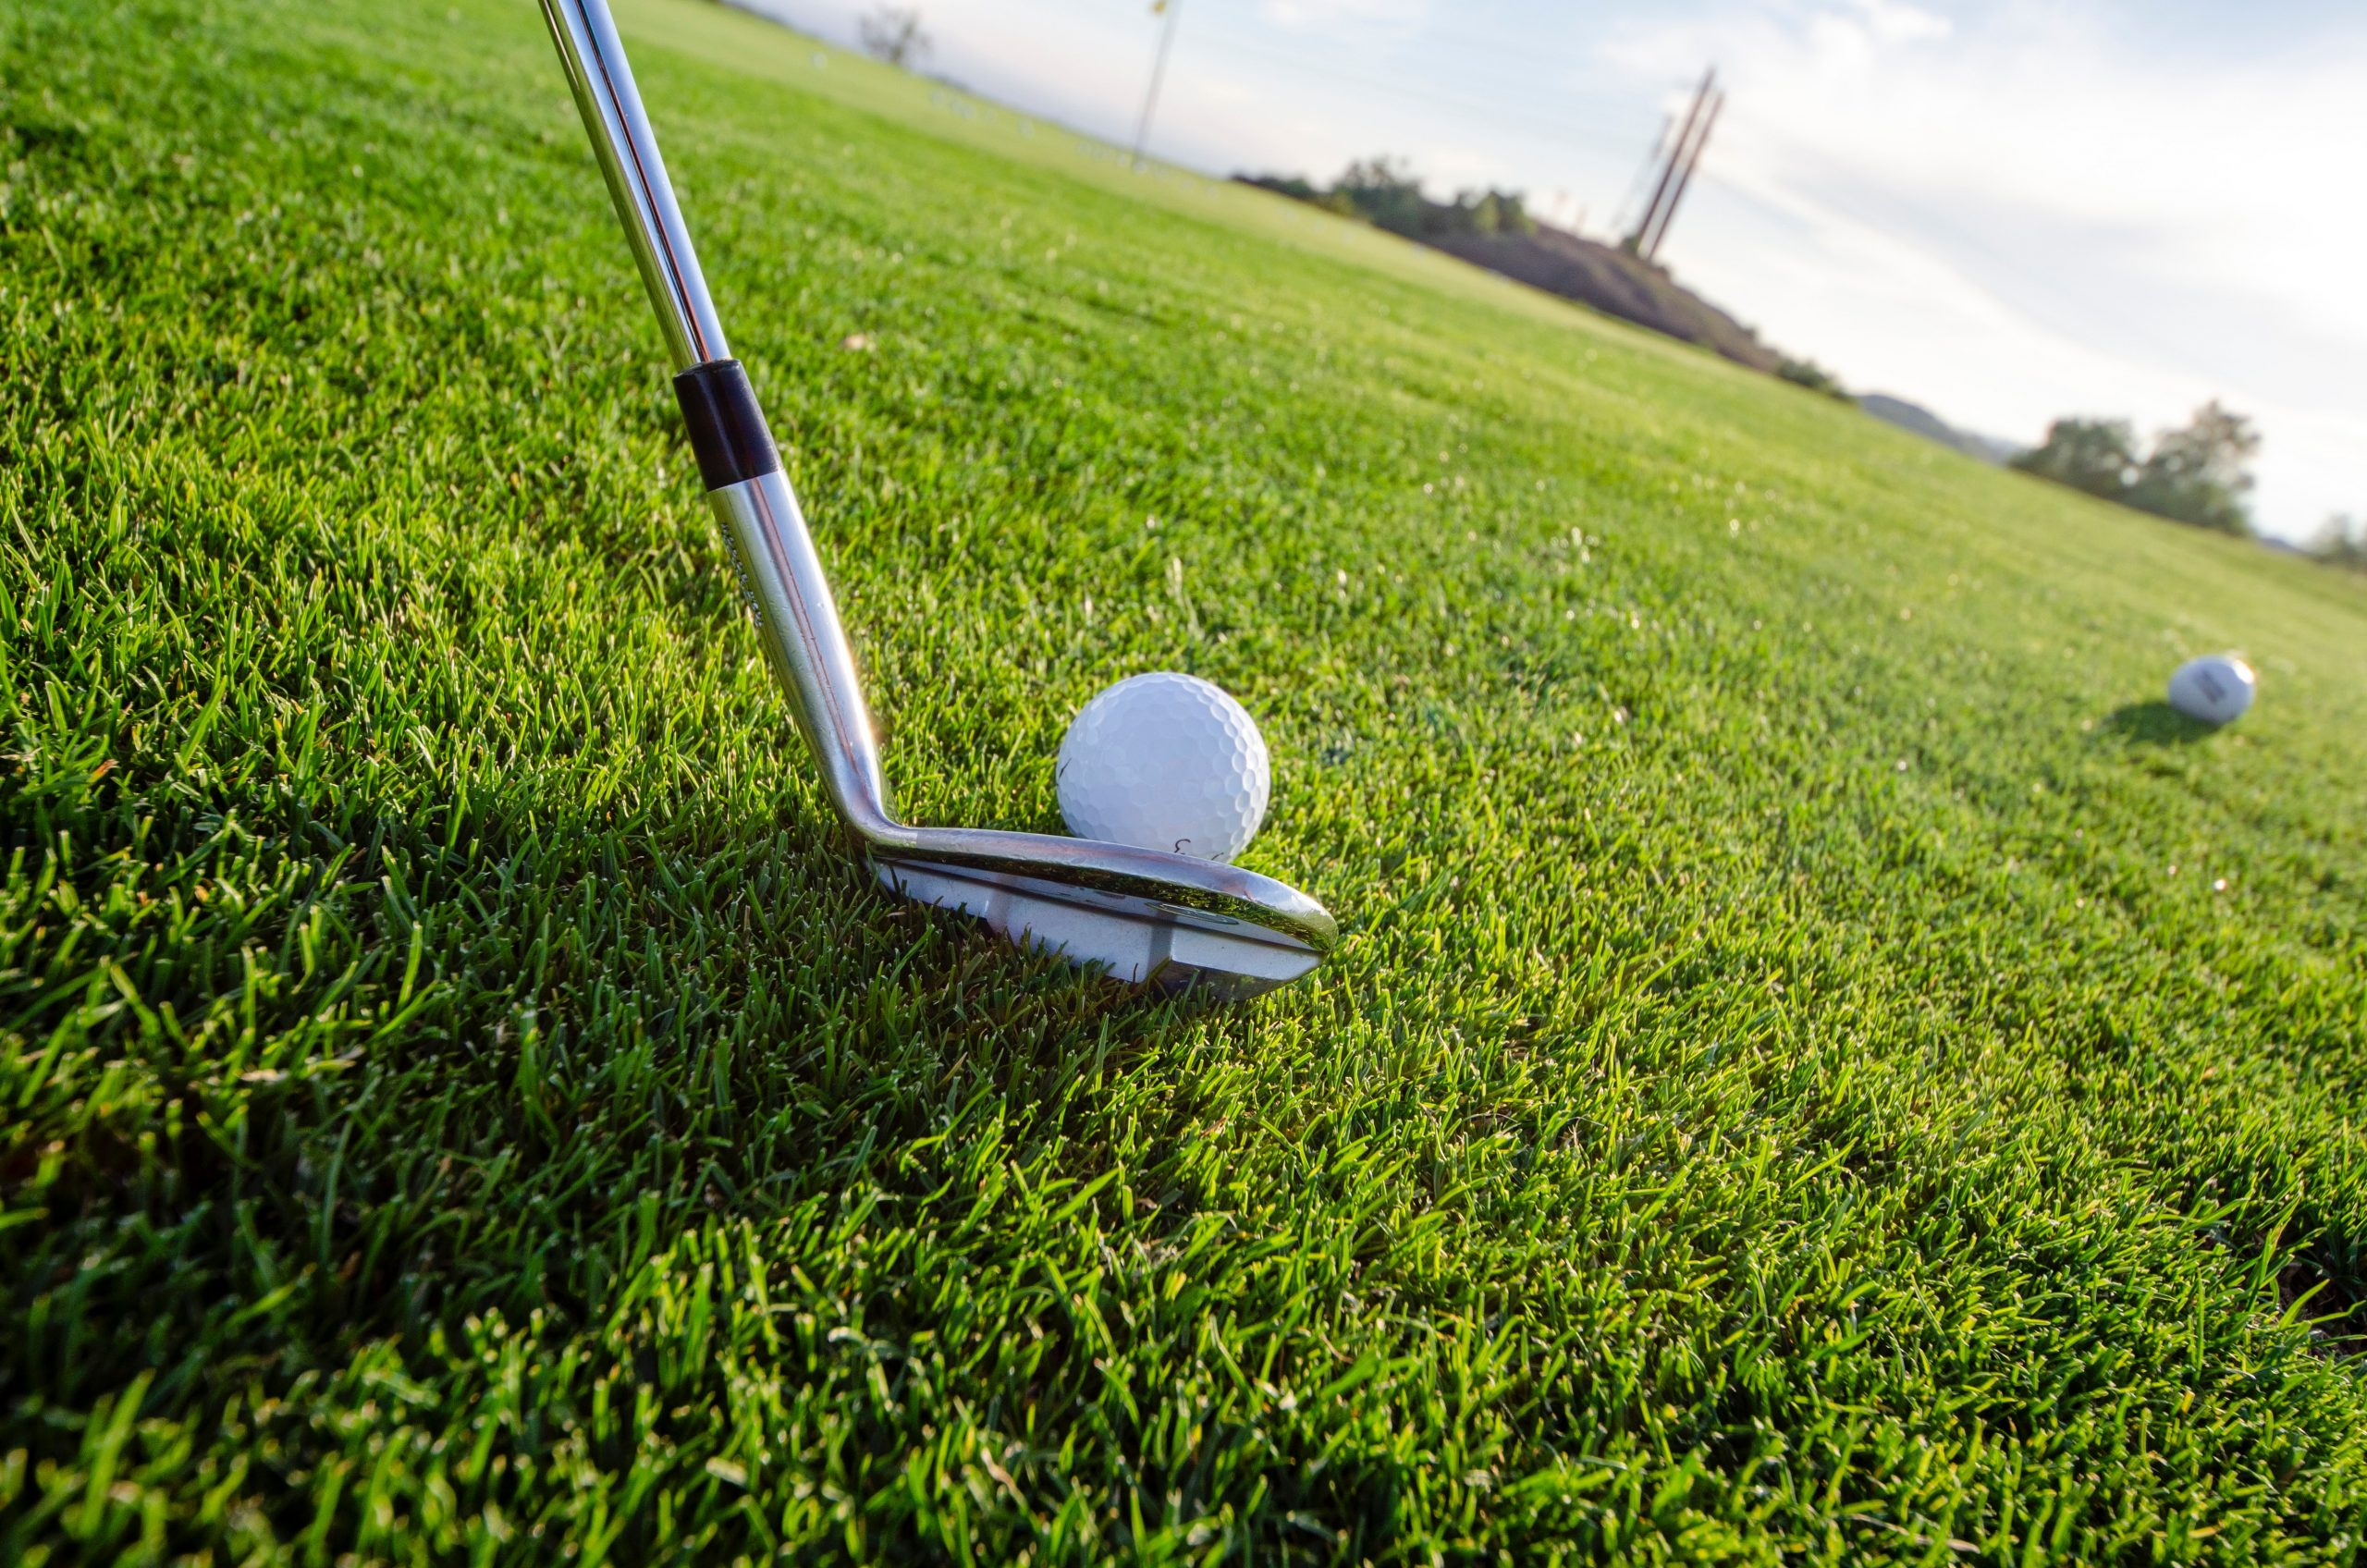 Golf ball and Gold Club on grass